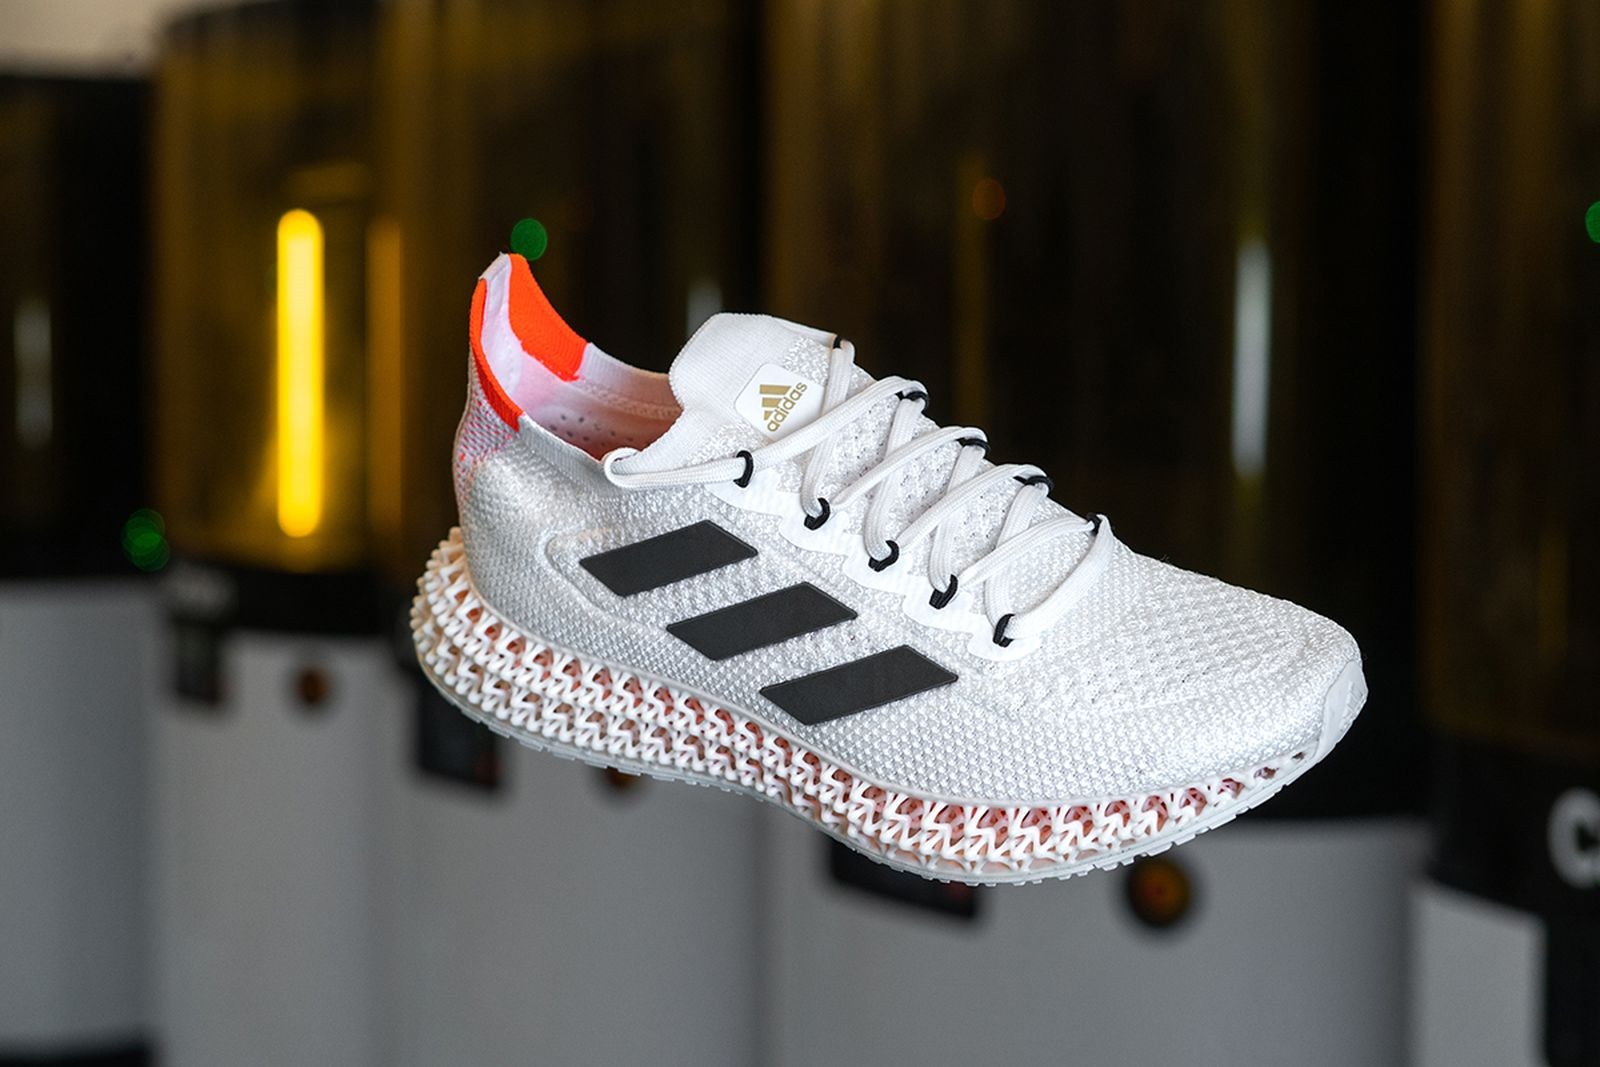 adidas-4dfwd-tokyo-release-date-price-09